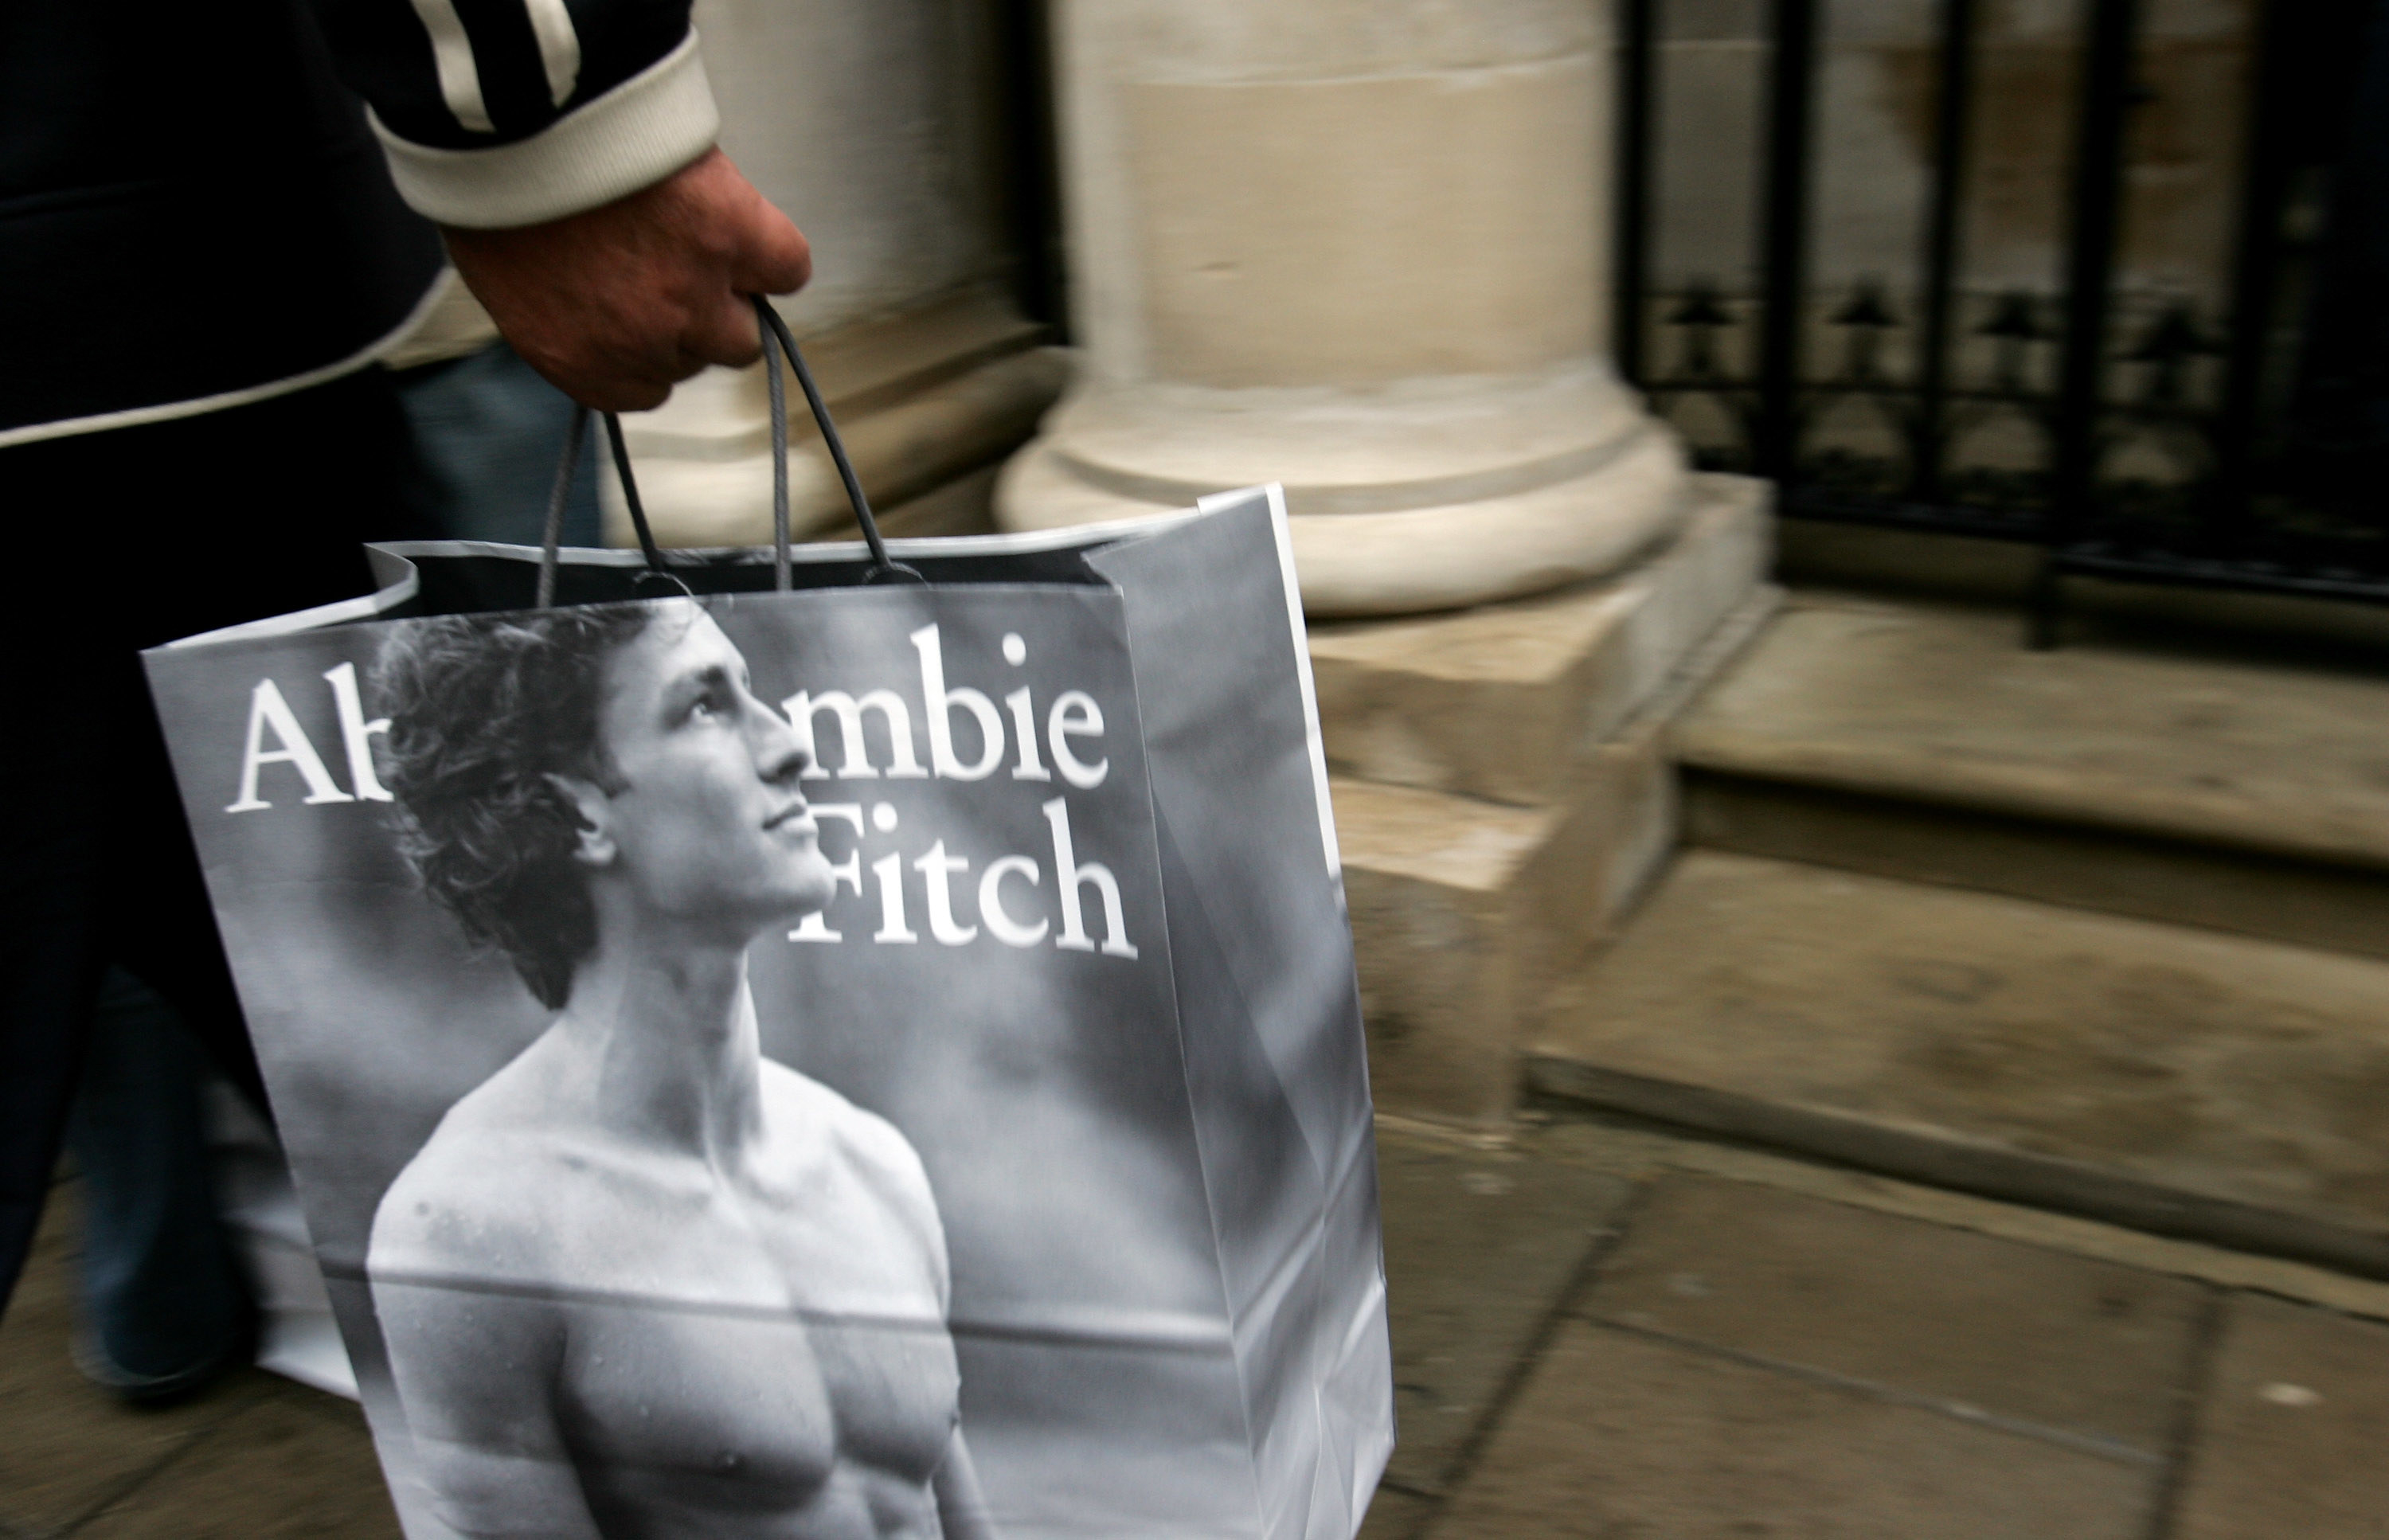 A close-up of a man carrying a black and white Abercrombie & Fitch bag with a shirtless model on it.